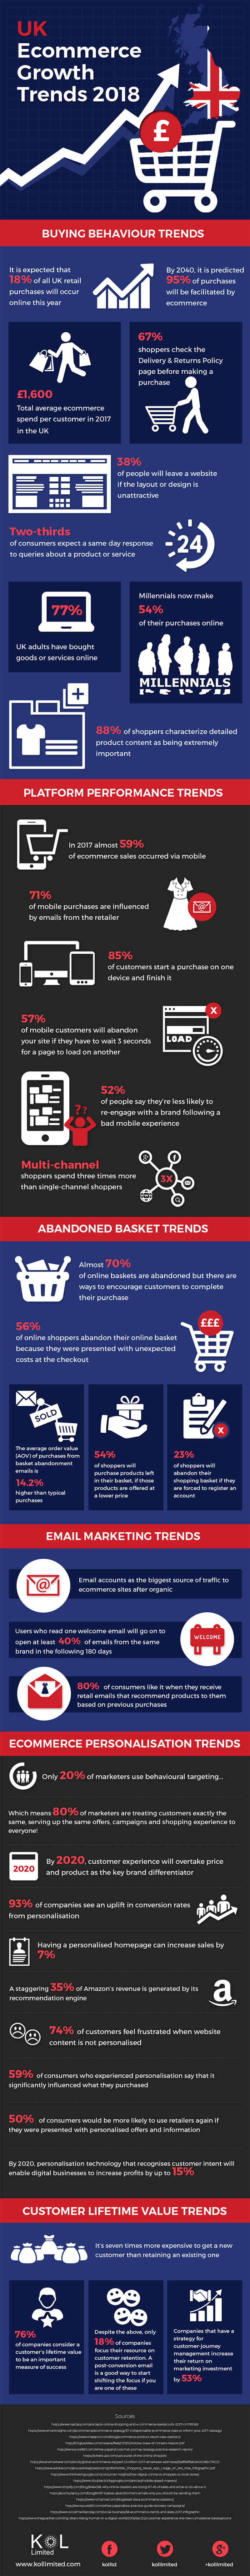 UK Ecommerce Growth Trends 2018